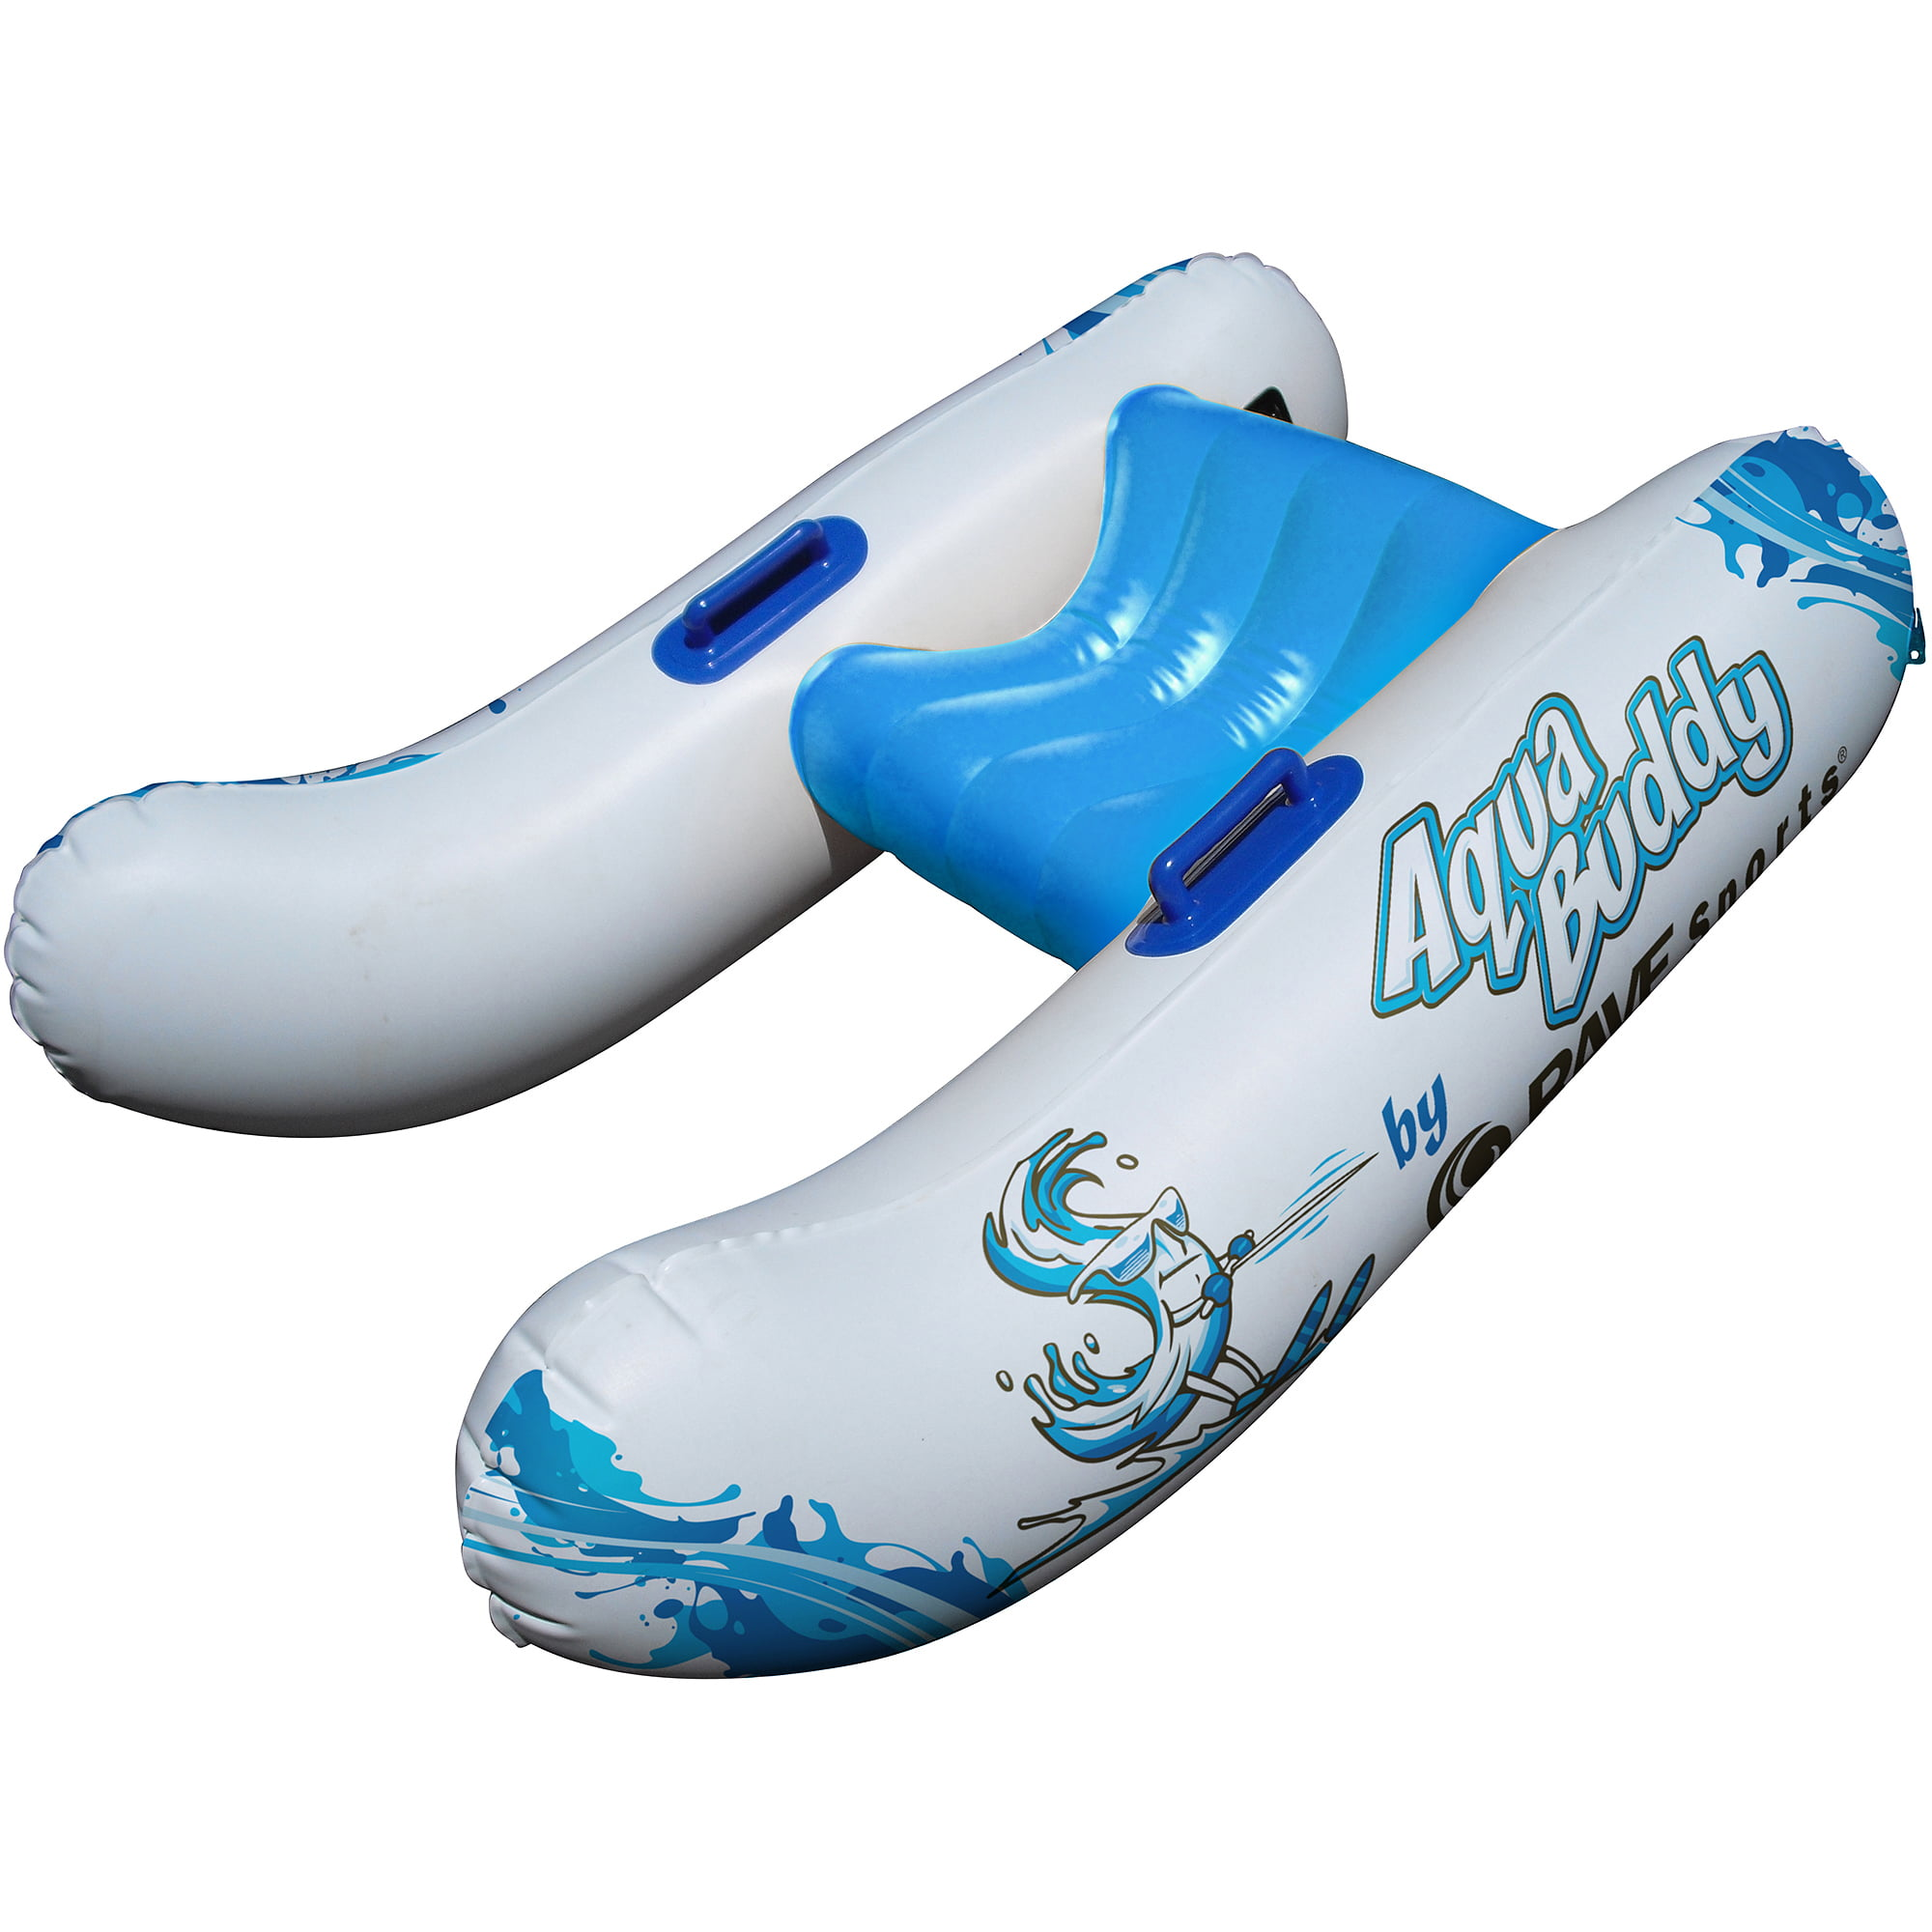 Rave Sports Aqua Buddy Ski and Wakeboard Trainer by Rave Sports